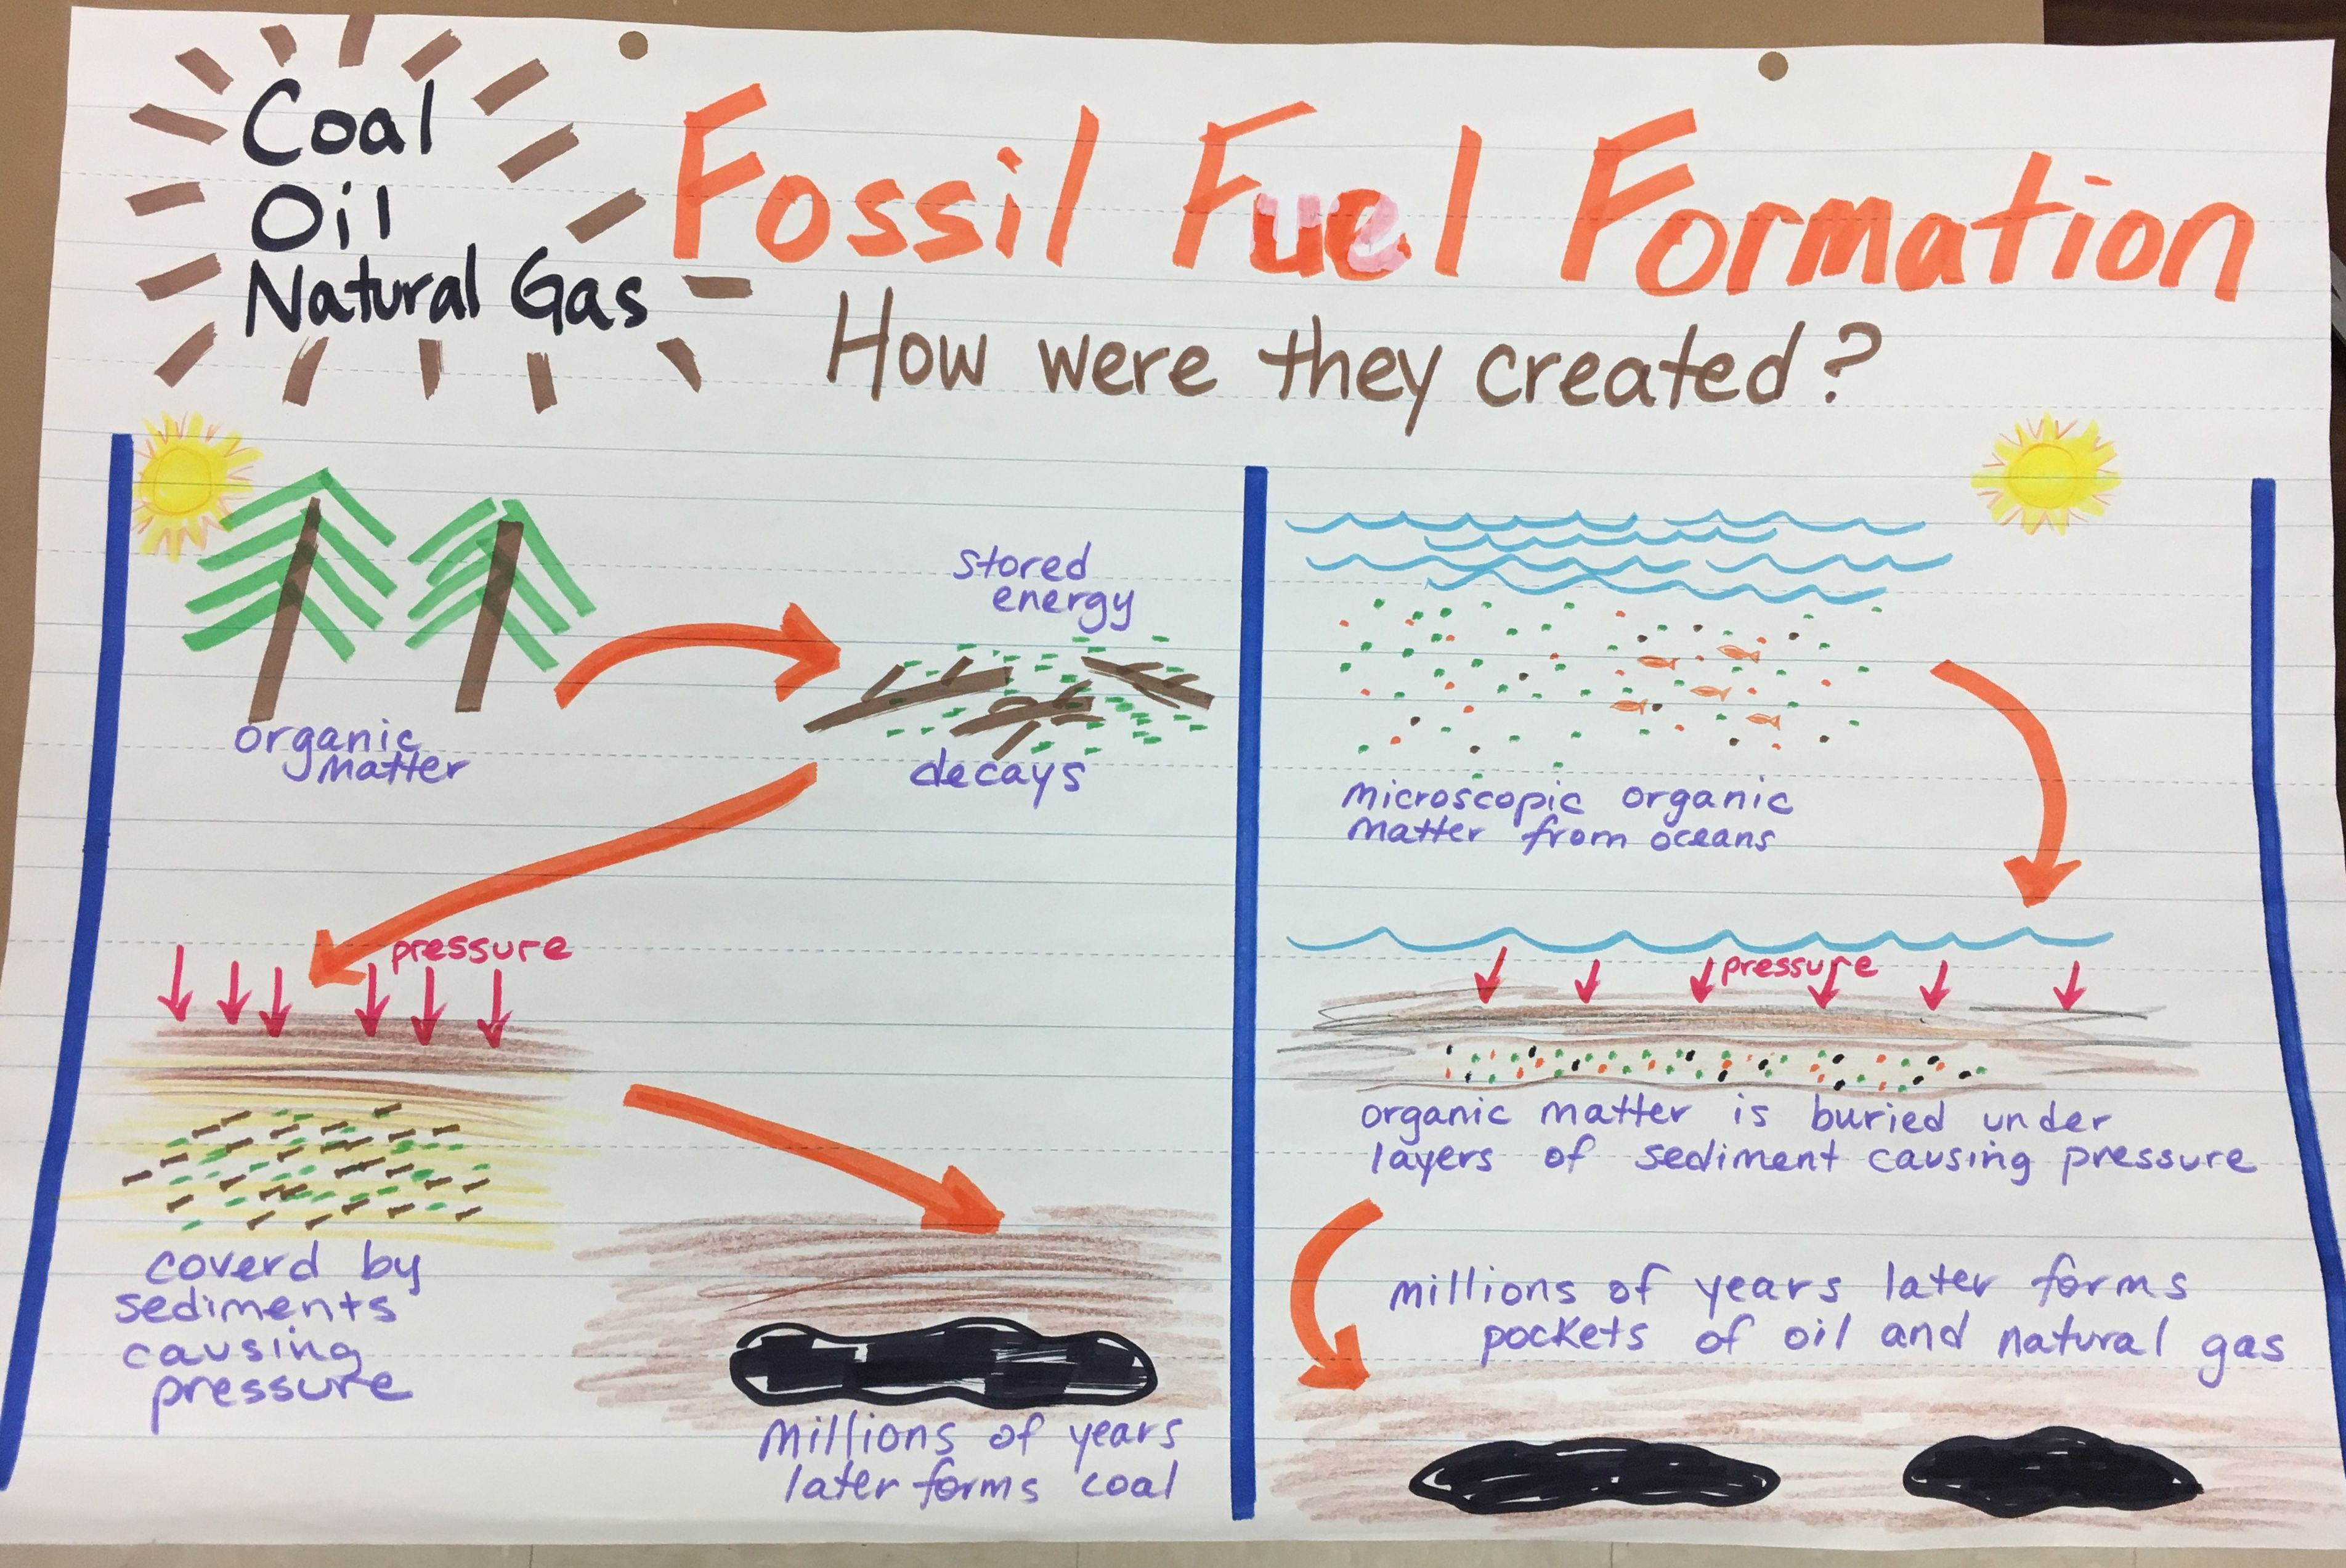 Fossil Fuel Formation Coal Oil Natural Gas 5th Grade Science Teks Science Teks 5th Grade Science Science Anchor Charts